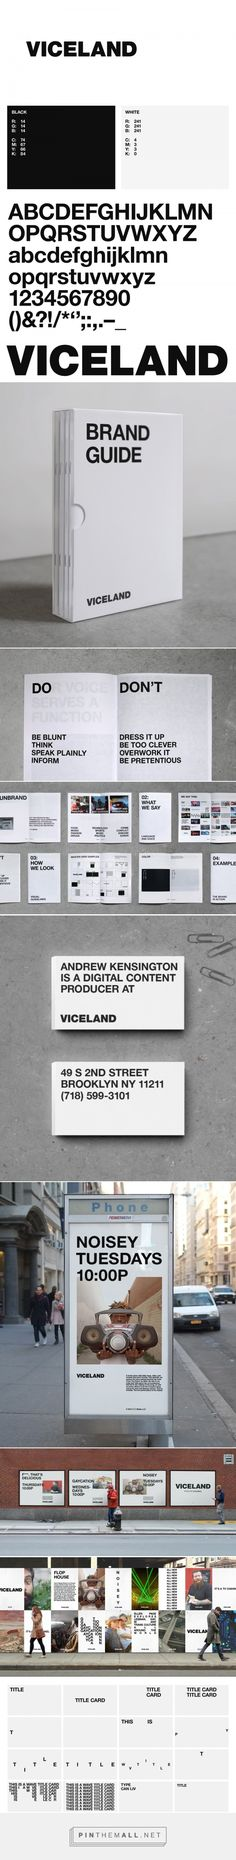 Brand New: New Logo, Identity, and On-Air Package for Viceland by Gretel. - a grouped images picture - Pin Them All Corporate Design, Graphic Design Typography, Corporate Identity, Web Design, Layout Design, Print Design, Design Guidelines, Brand Guidelines, Identity Design